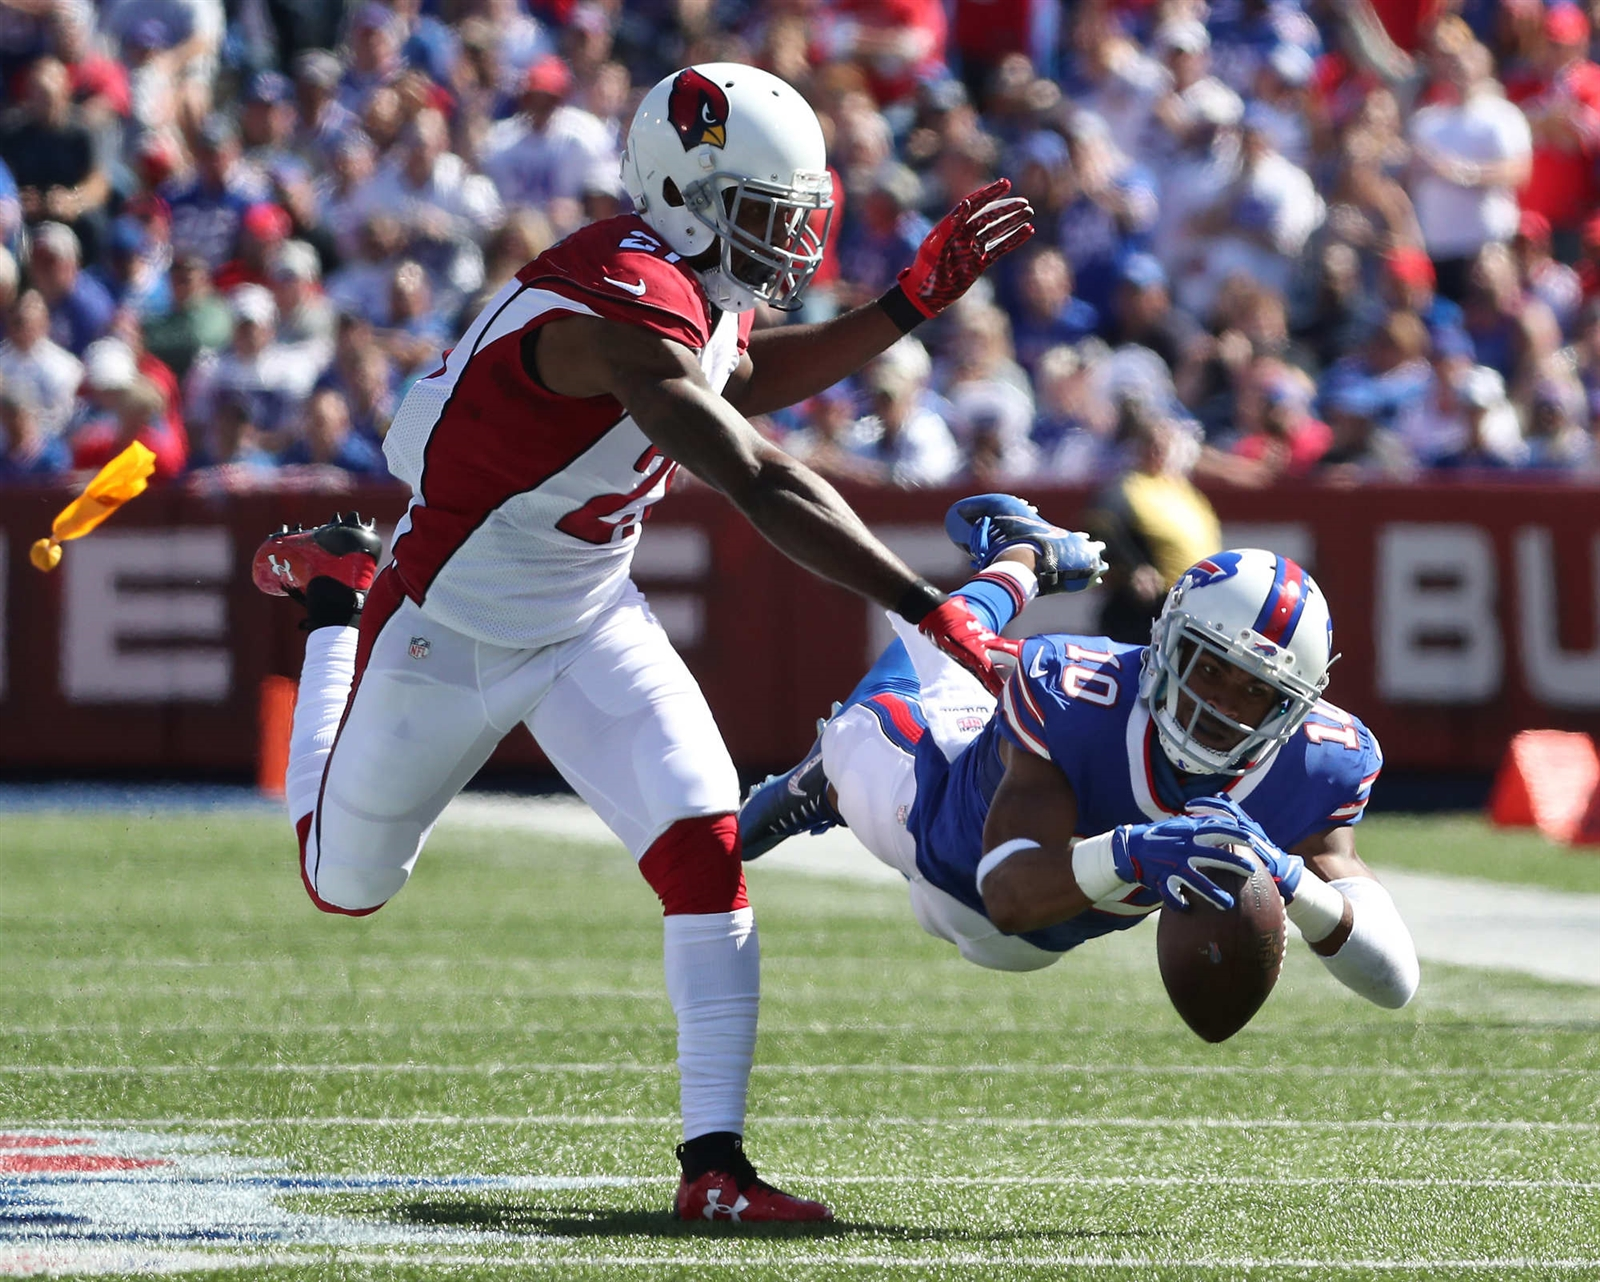 Buffalo Bills wide receiver Robert Woods (10) pulls in a catch under pressure from Arizona Cardinals cornerback Patrick Peterson (21) in the first quarter at New Era Field in Orchard Park, N.Y. on Sunday, Sept. 25, 2016.